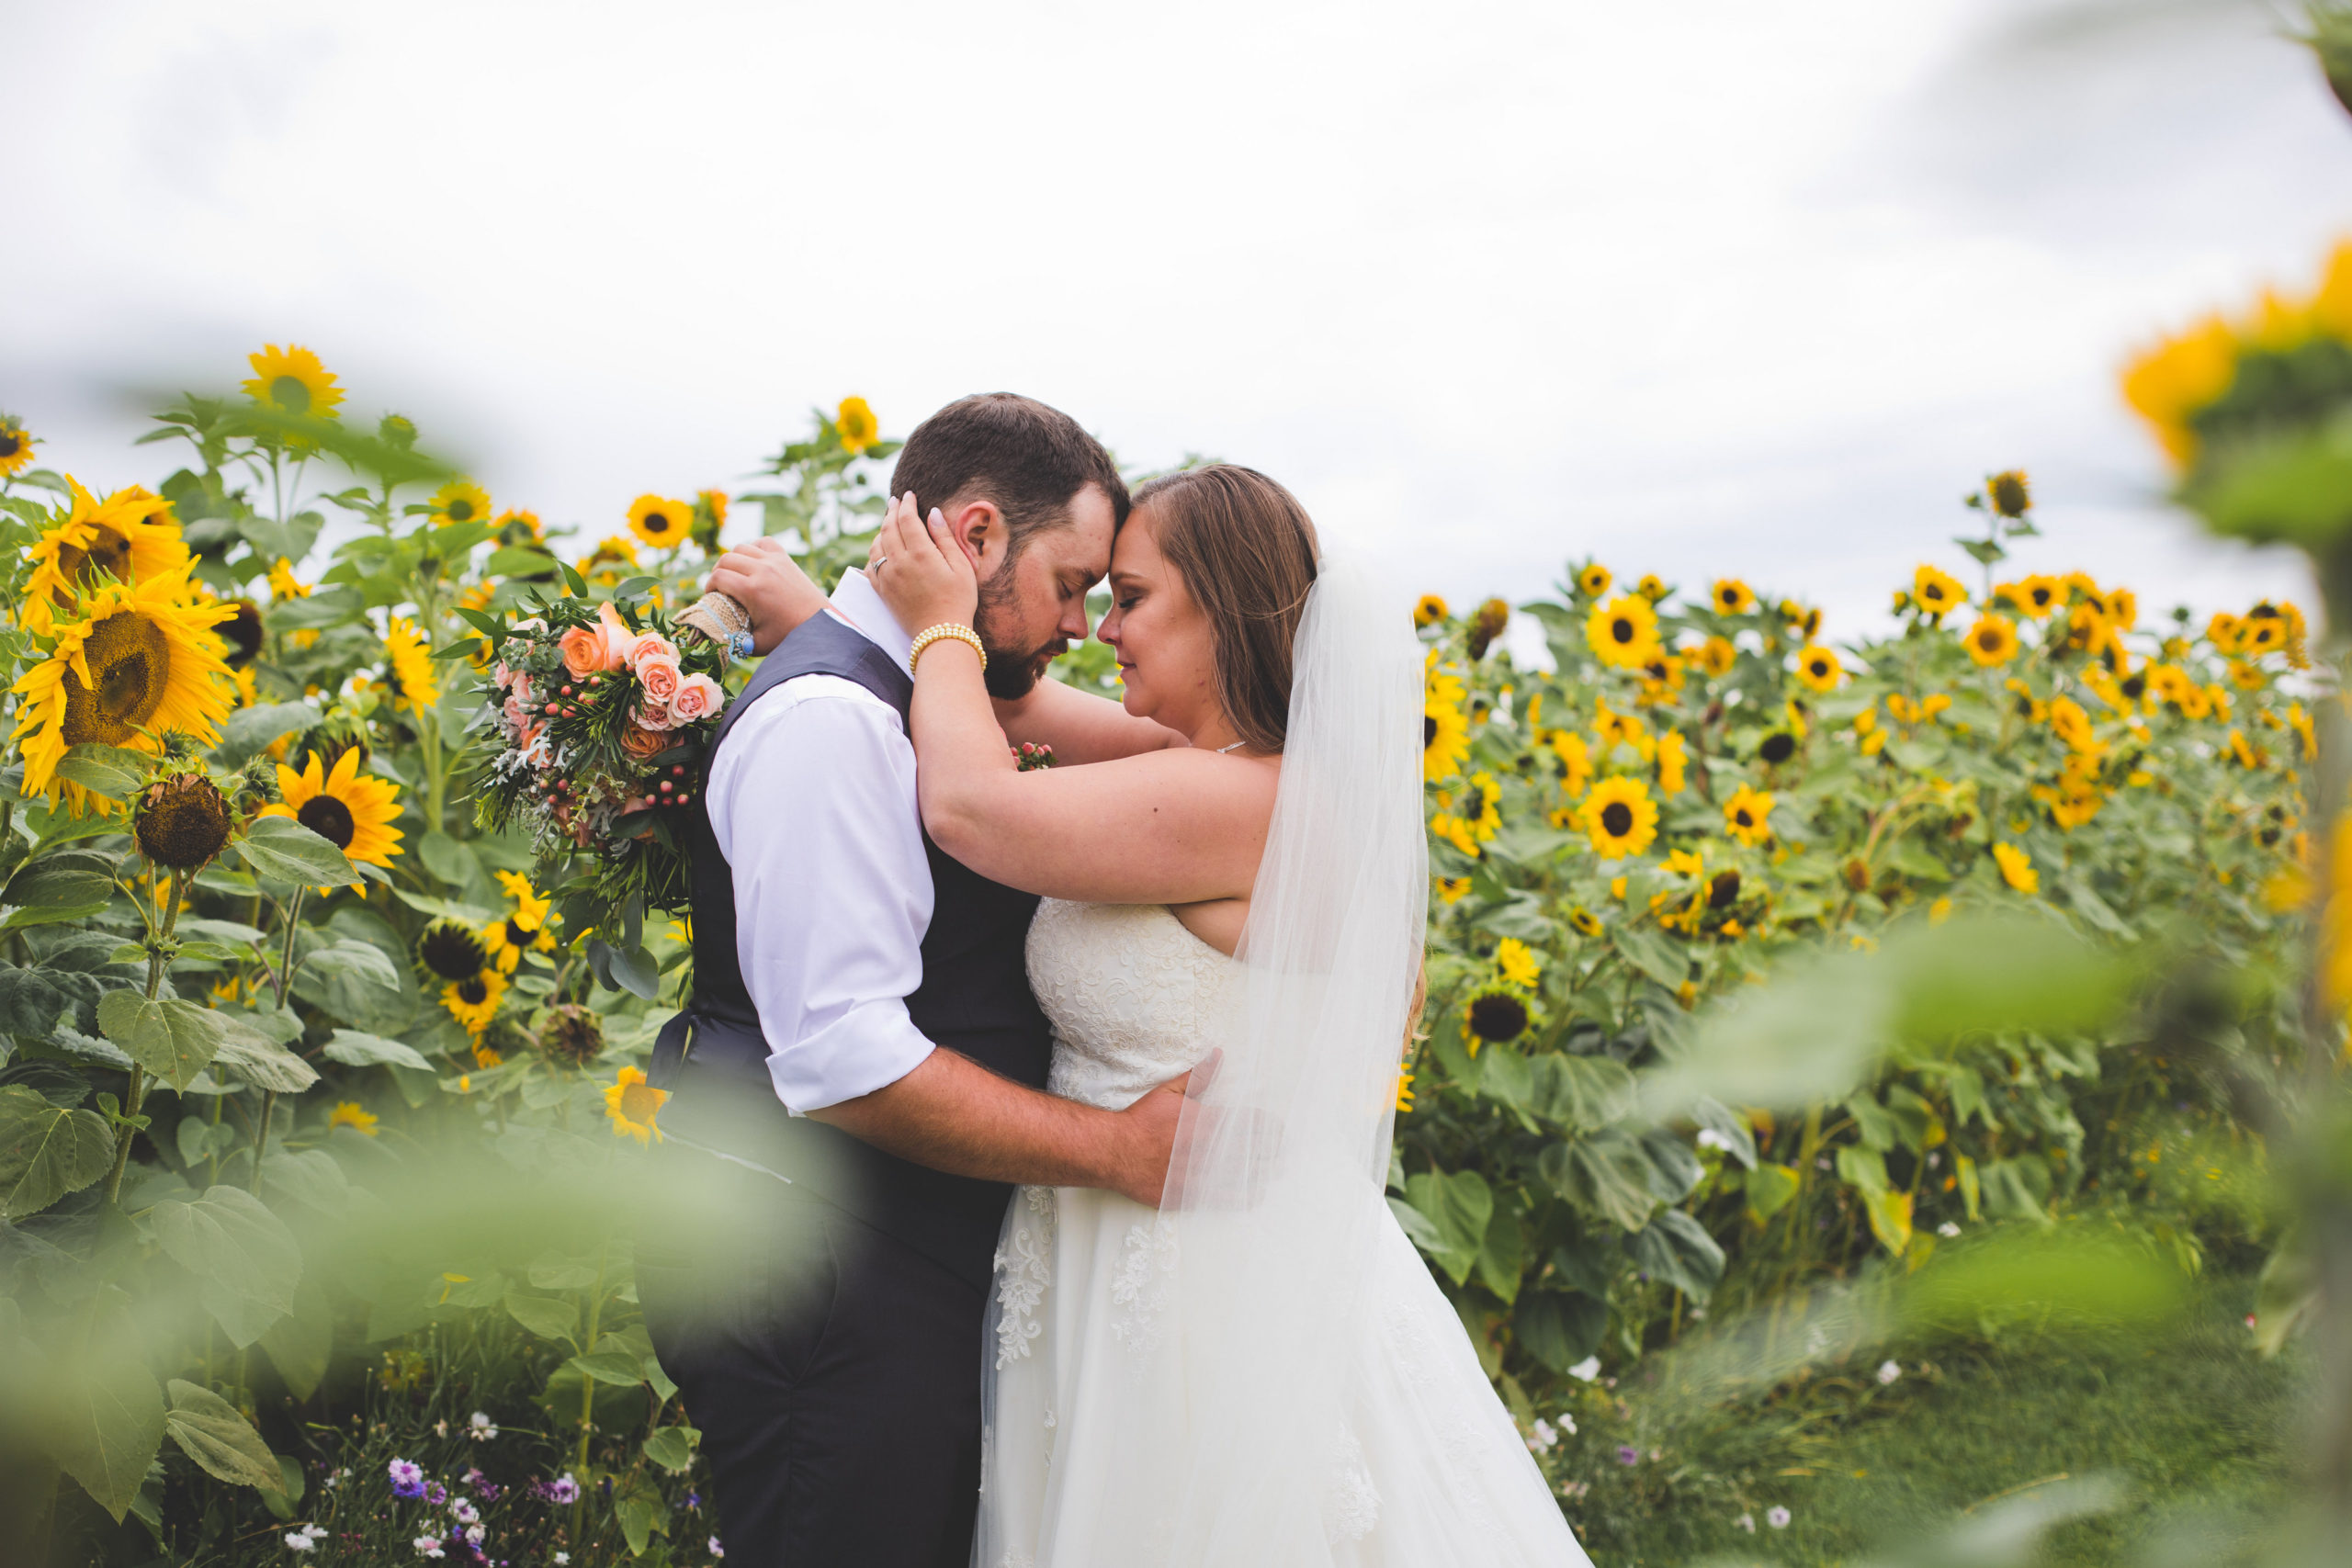 Bright yellow sunflowers surround a bride and groom as they stand in the garden. The Gathered - Southern Alberta